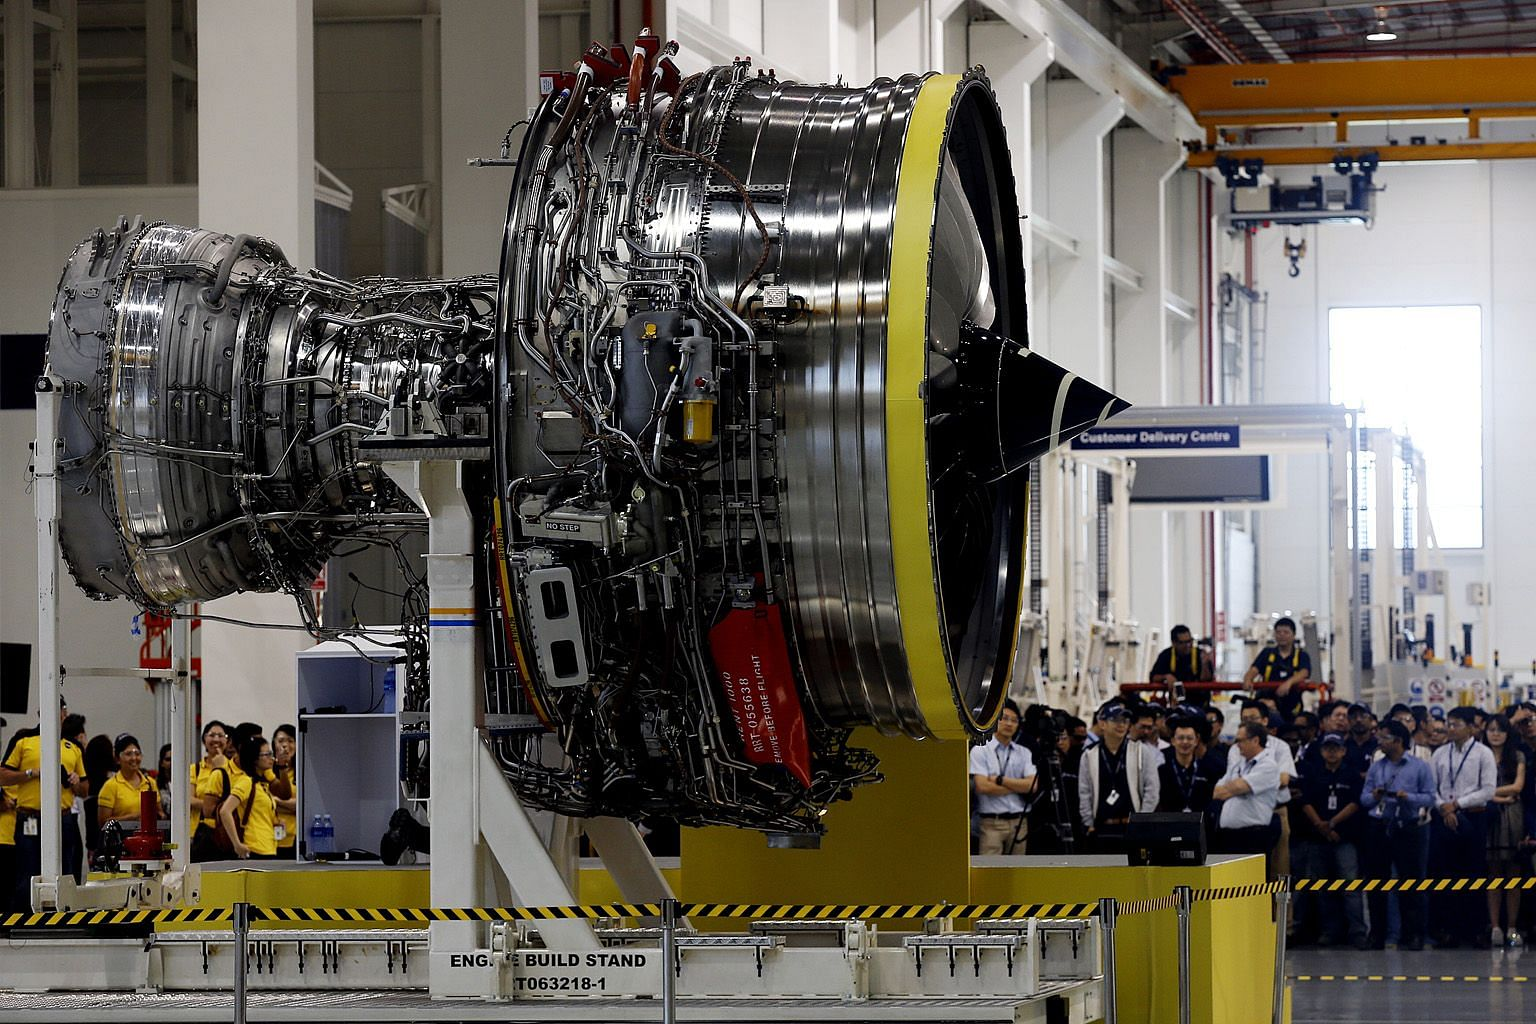 The layoffs come after Rolls-Royce announced in May that it would slash at least 9,000 jobs worldwide. The engineering giant employs about 1,000 people here, and it said mostly technical roles will be affected. ST FILE PHOTO